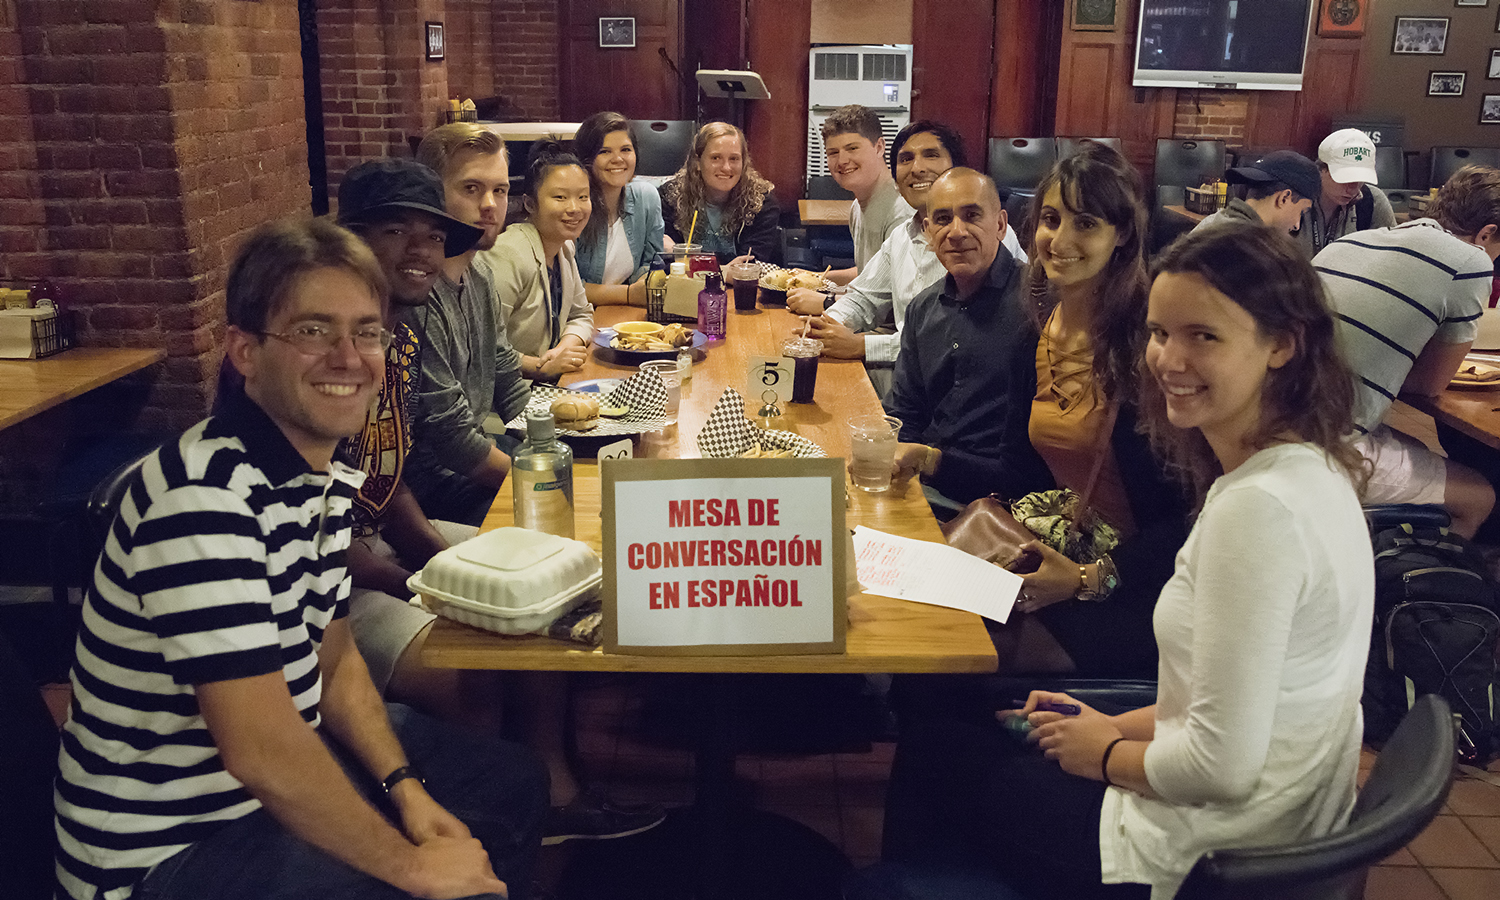 The Spanish Conversation Table holds their weekly meeting from 12:30-1:30 PM in the Cellar Pub. Consisting of students, Spanish teaching fellows and faculty members, the group covers a variety of conversation topics and is open to any student on campus looking to practice their Spanish language skills.